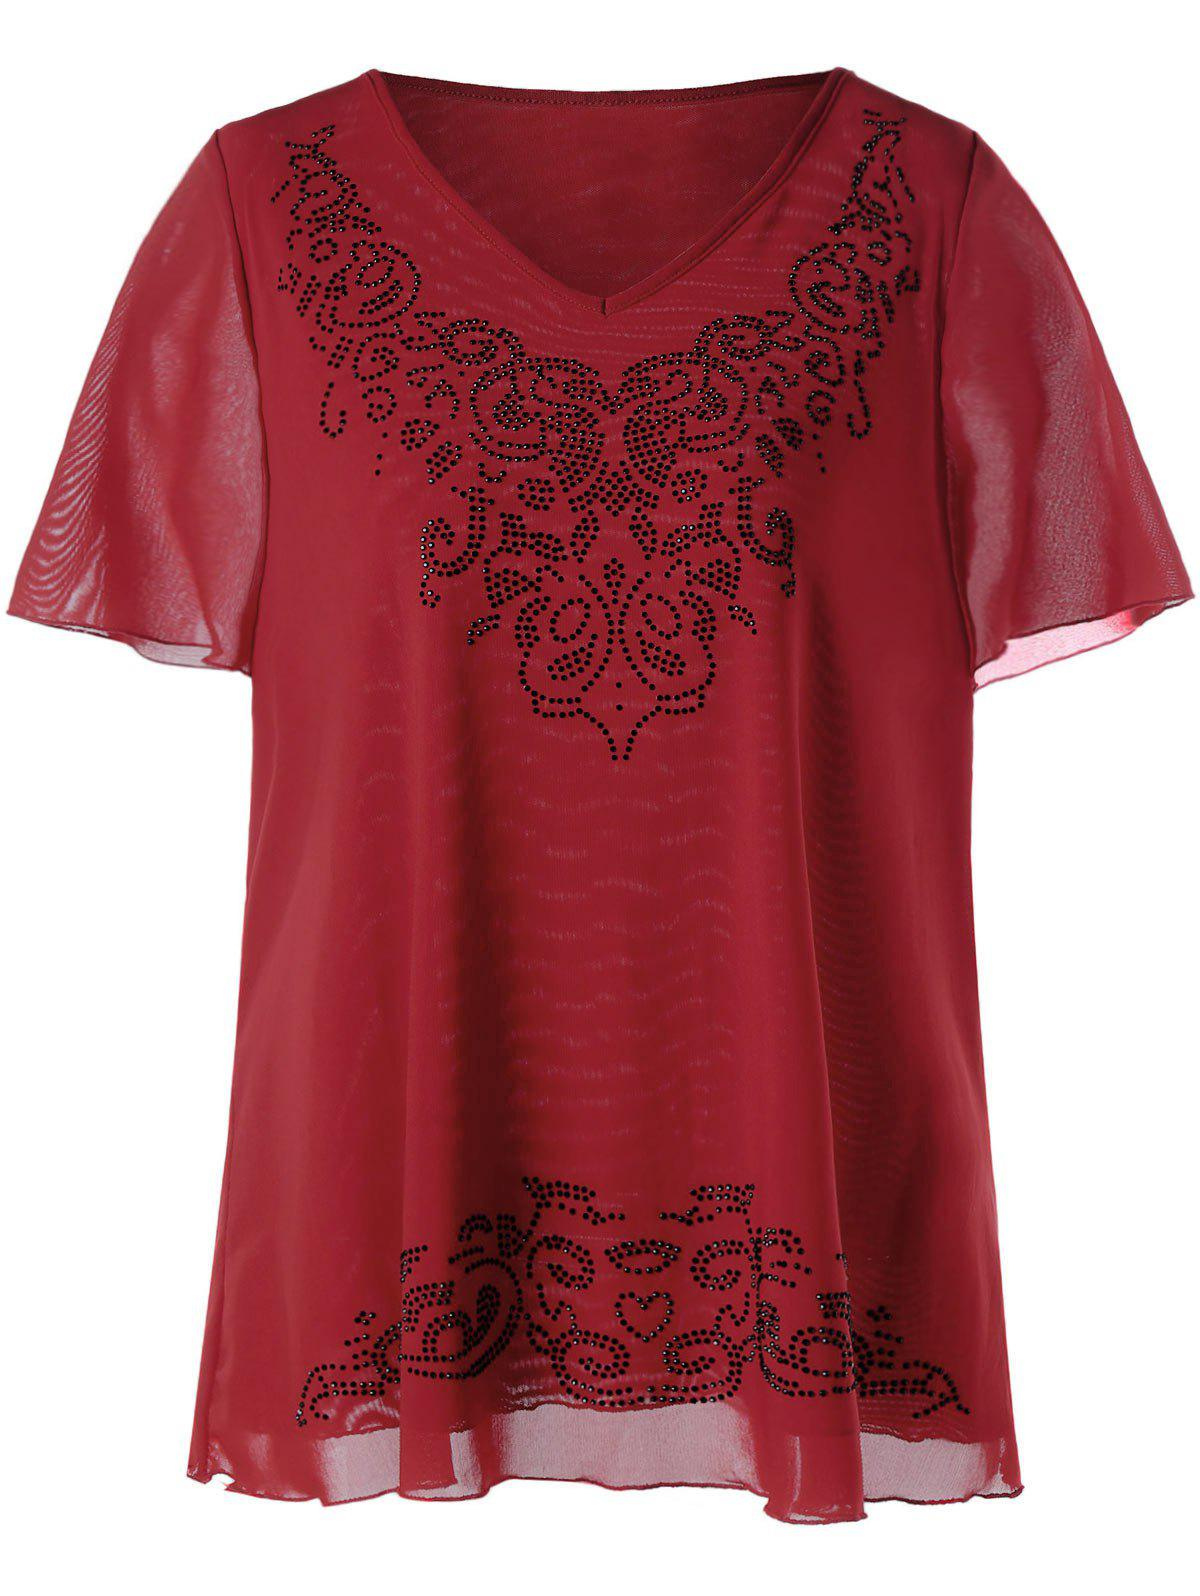 Plus Size V-neck Rhinestone Embellished TopWOMEN<br><br>Size: 4XL; Color: RED; Material: Cotton,Polyester; Shirt Length: Regular; Sleeve Length: Short; Collar: V-Neck; Style: Fashion; Season: Summer; Embellishment: Rhinestone; Pattern Type: Others; Weight: 0.2600kg; Package Contents: 1 x Top;